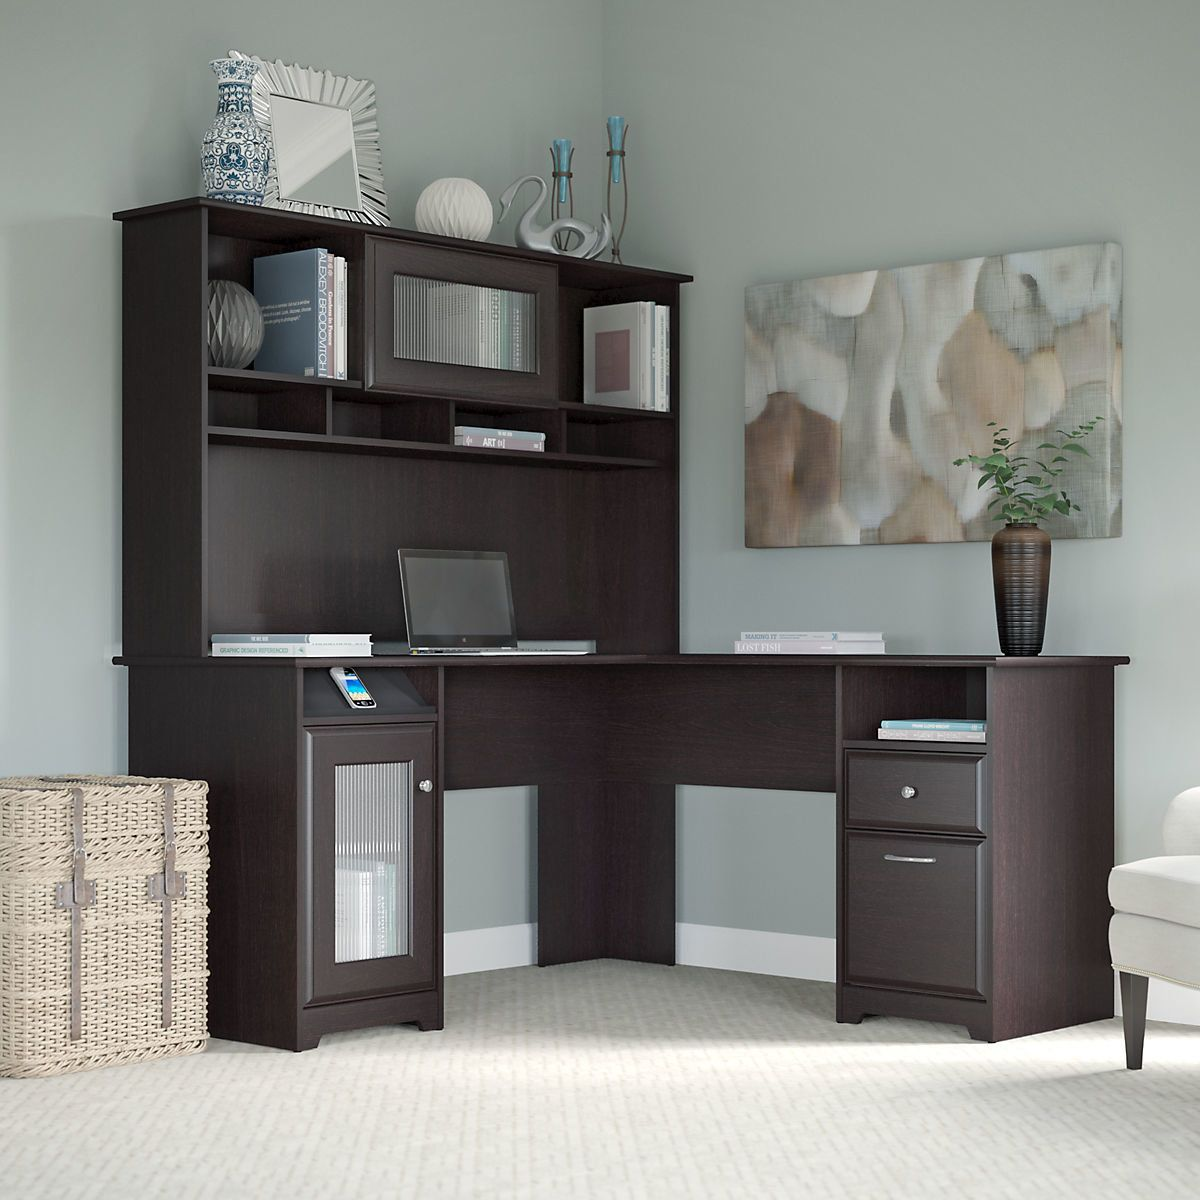 Toledo lshaped executive desk with hutch products pinterest